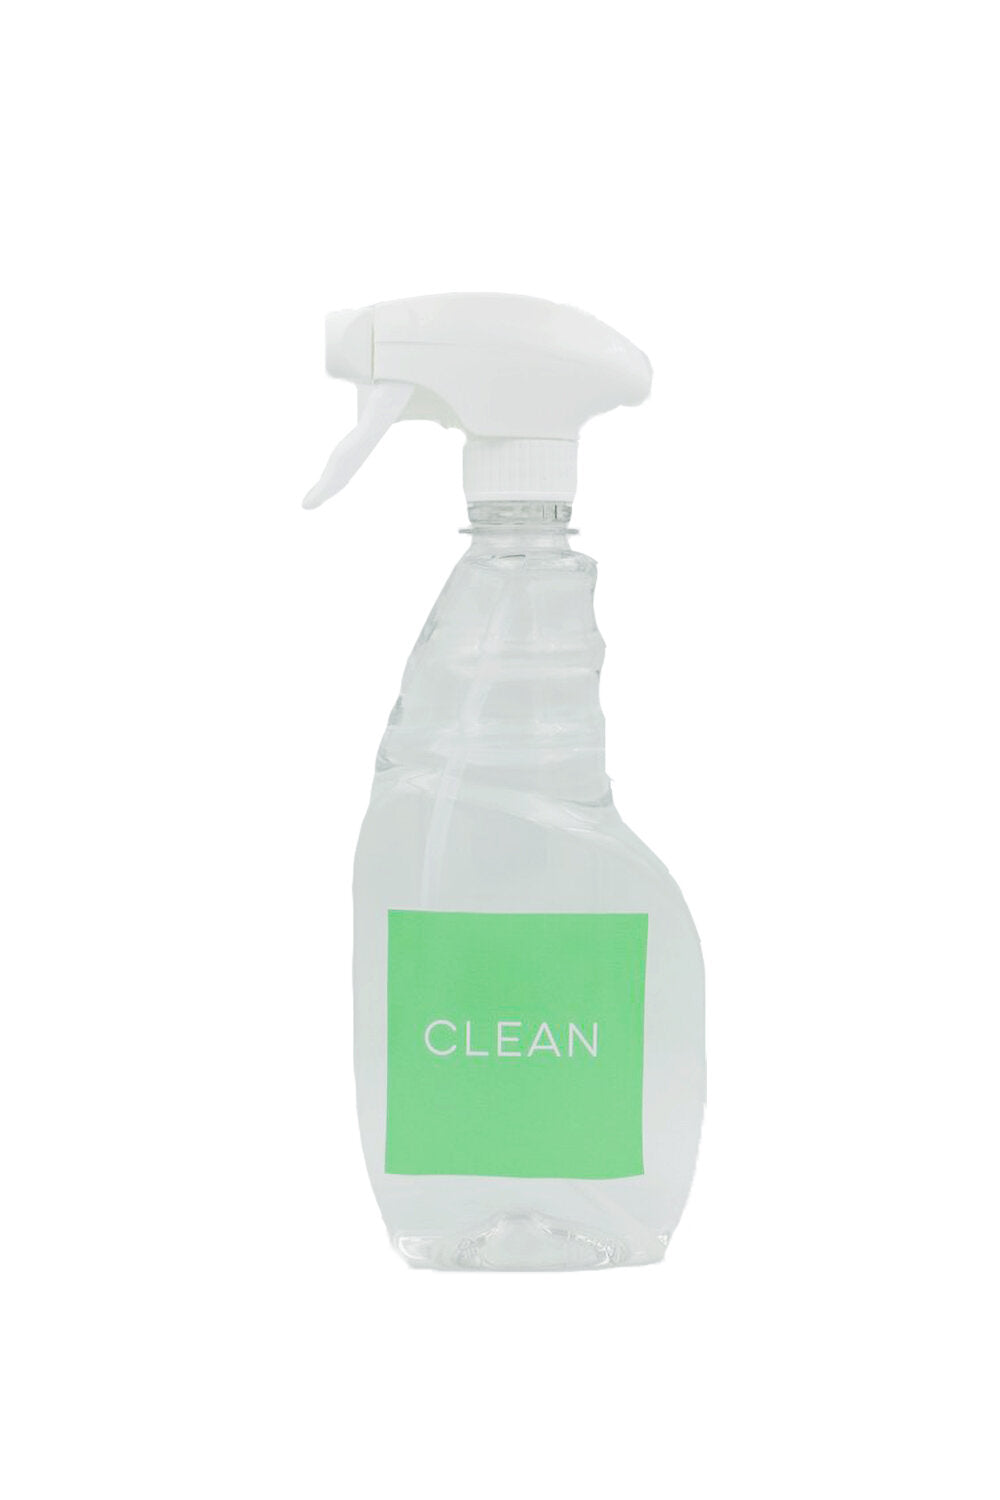 Clean - Organic Household Spray